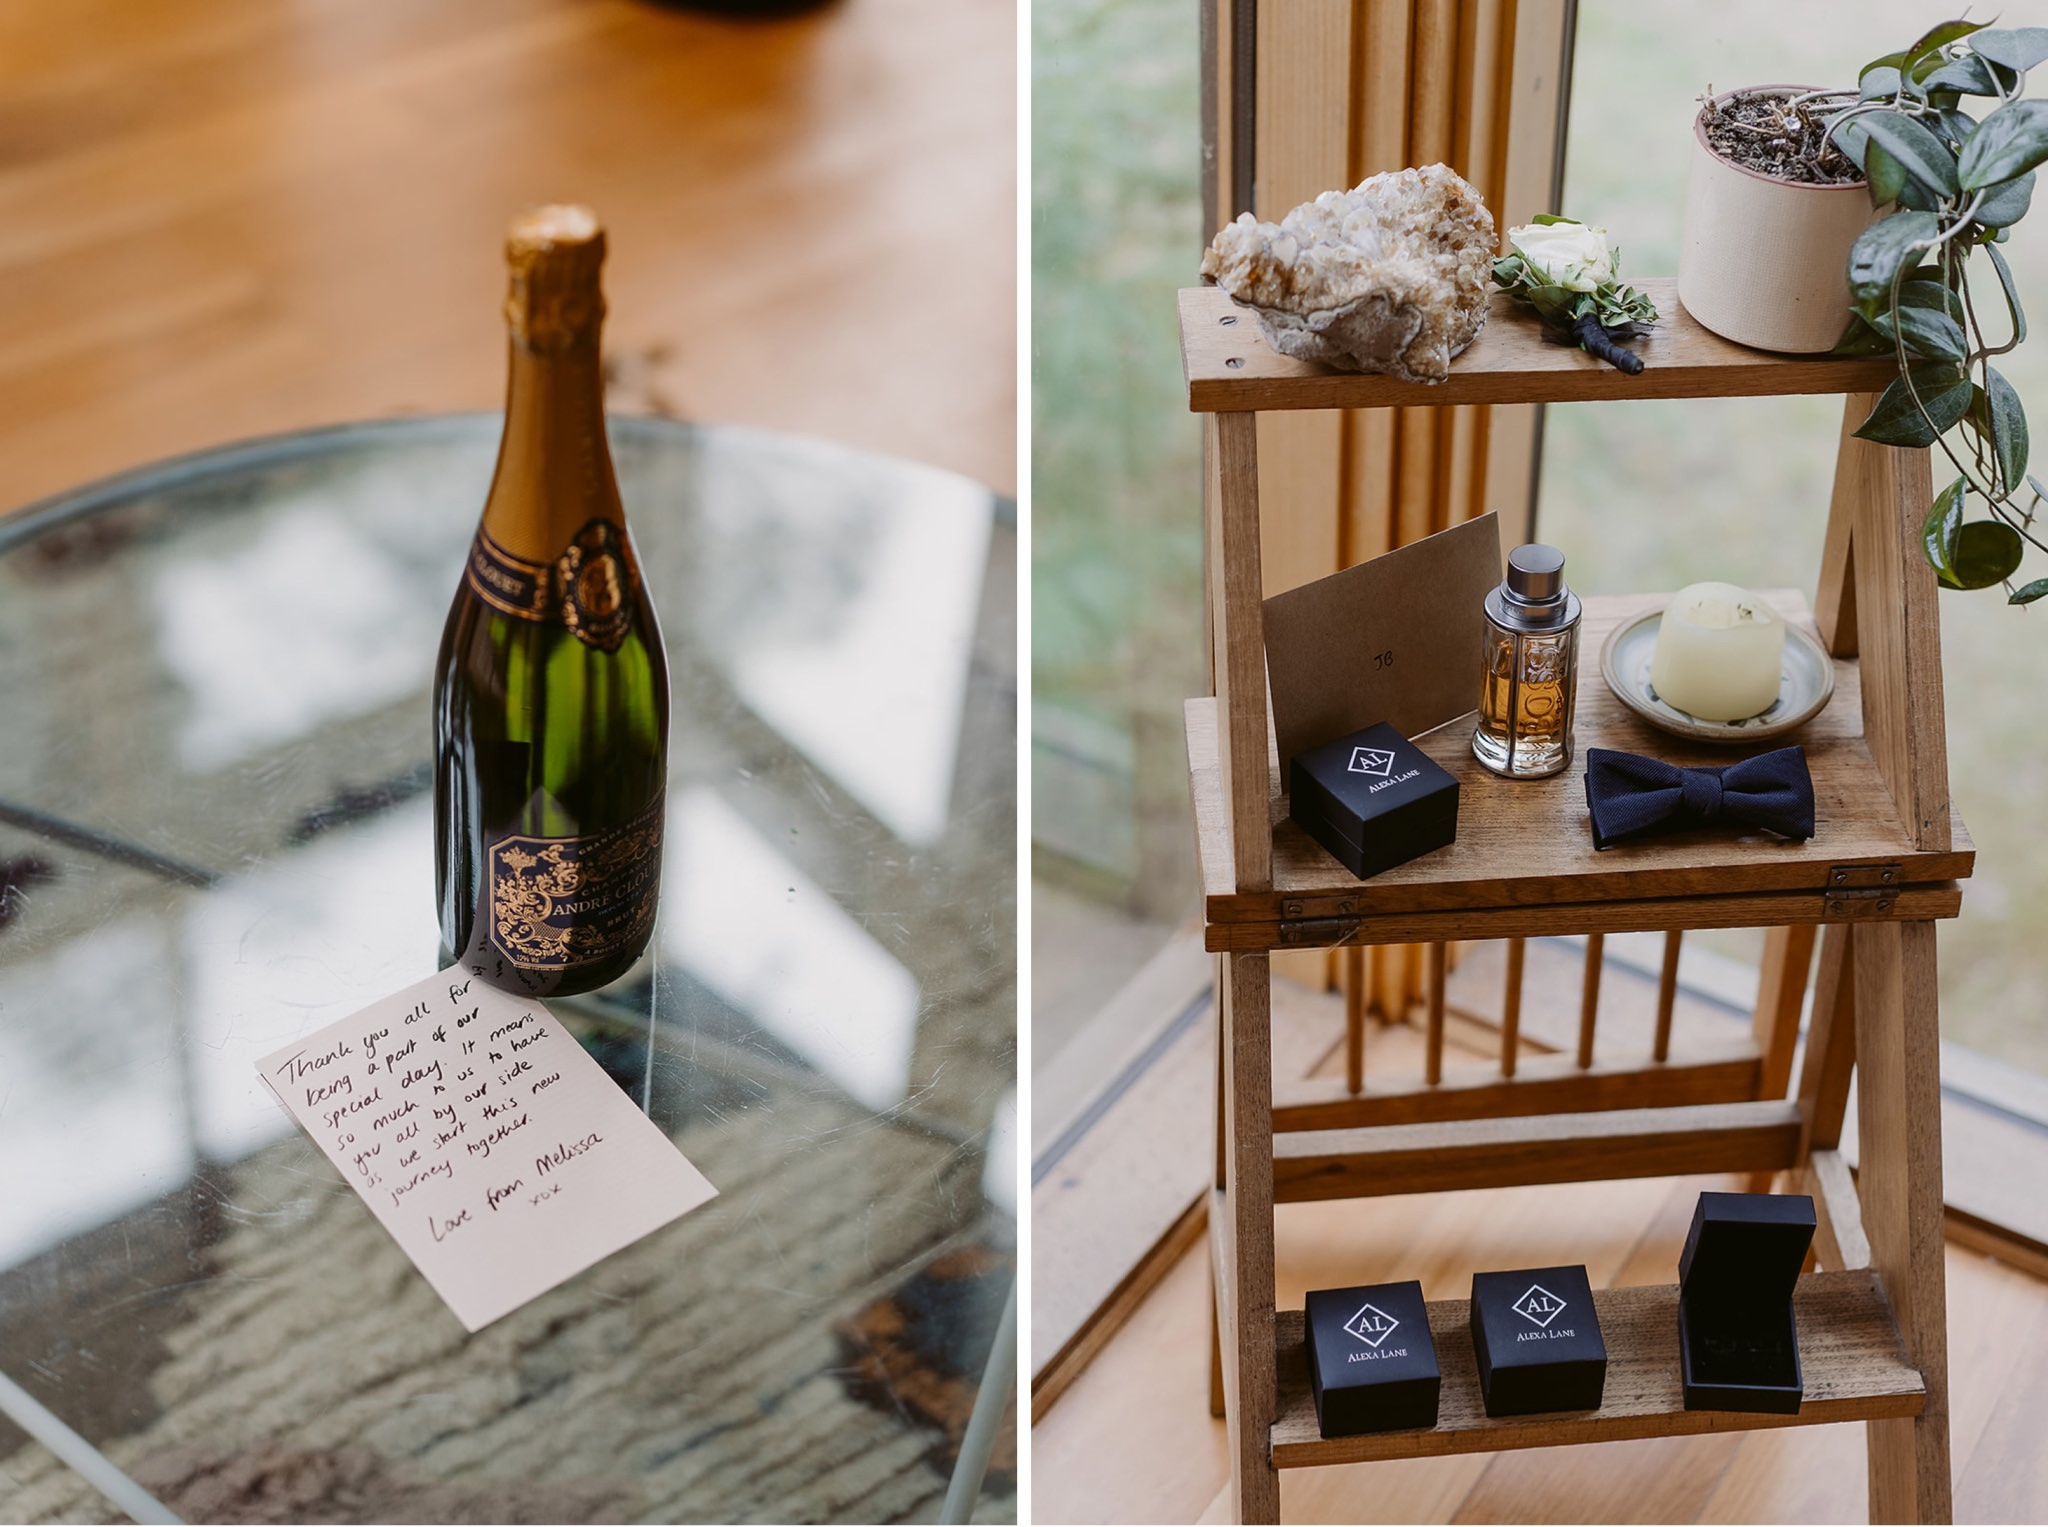 Stones of the Yarra Valley wedding photographer Ashleigh haase2.jpg